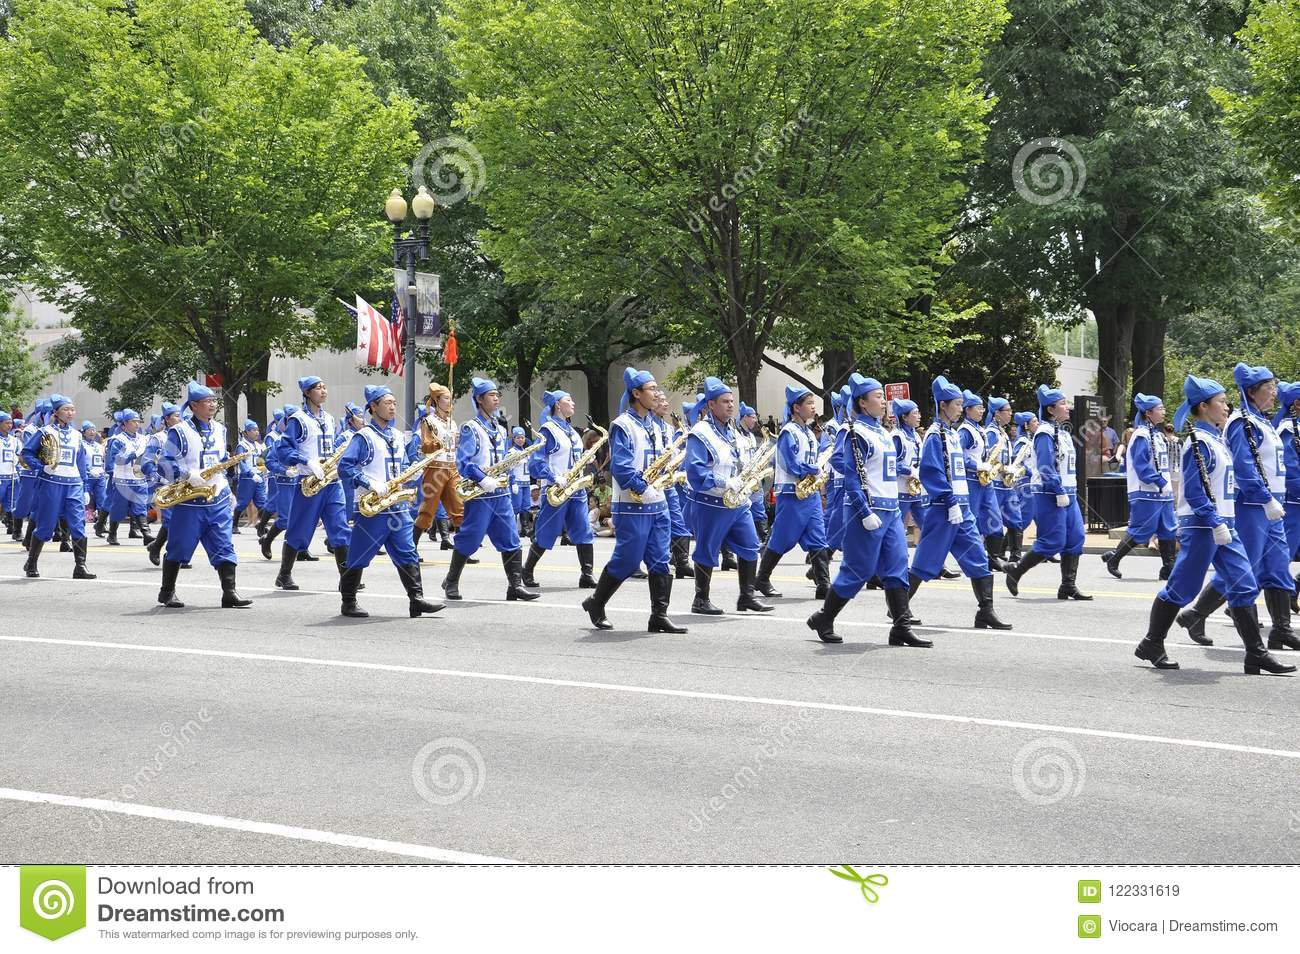 Washington DC, July 4th 2017: School team at The Parade for the 4th July from Washington District of Columbia USA